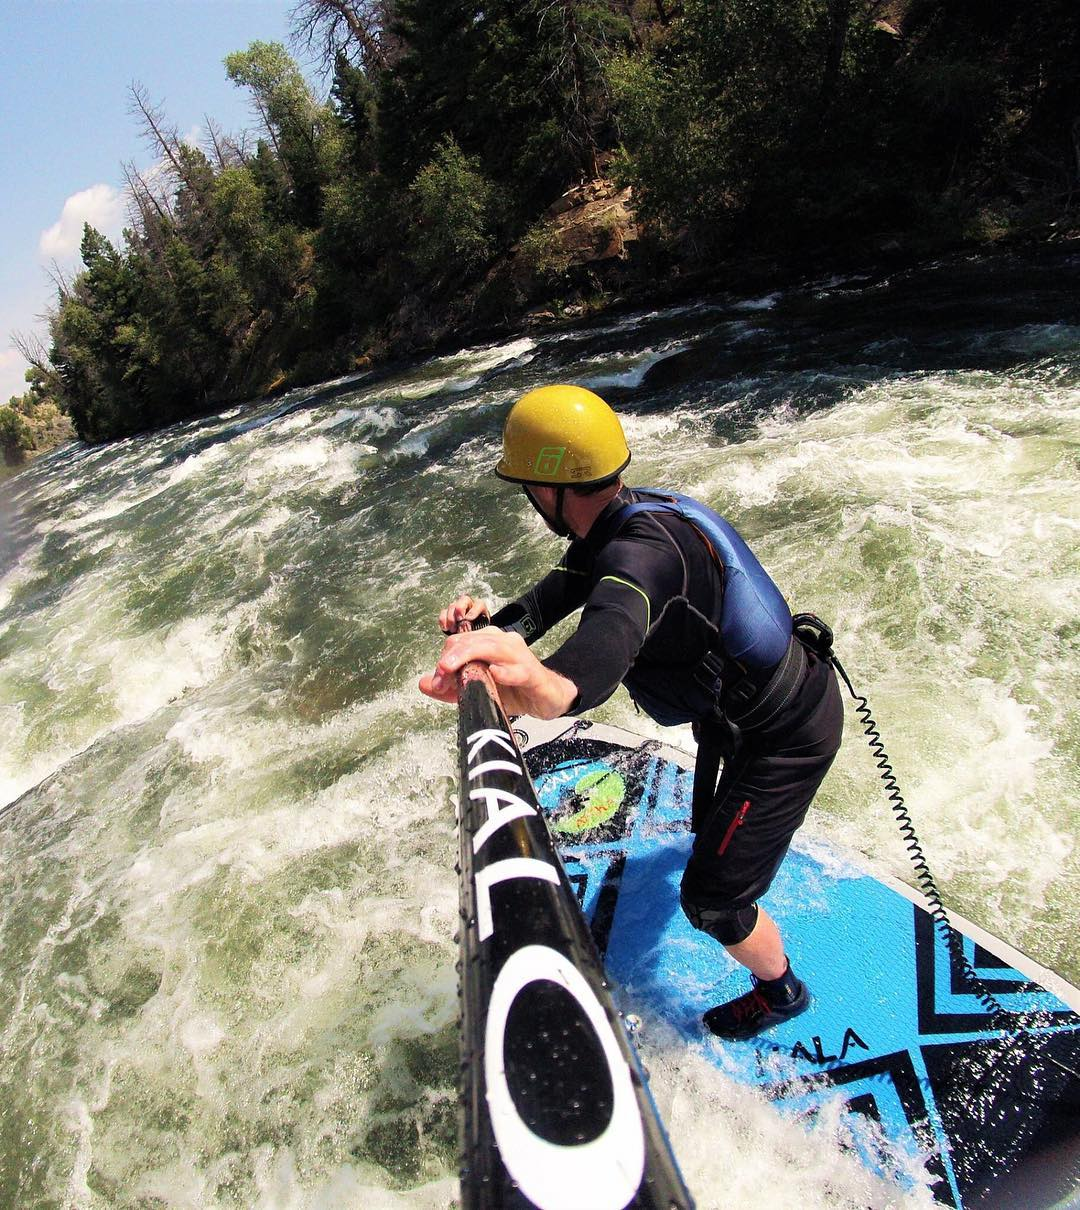 Happy #whitewaterwednesday!! Hope you have an amazing day out on the water!  Paddler: Ben Staley Board: #HalaAtcha #HalaGear #adventuredesigned #whitewaterdesigned #whitewaterwednesday #charging #sup #standuppaddle #paddleboard